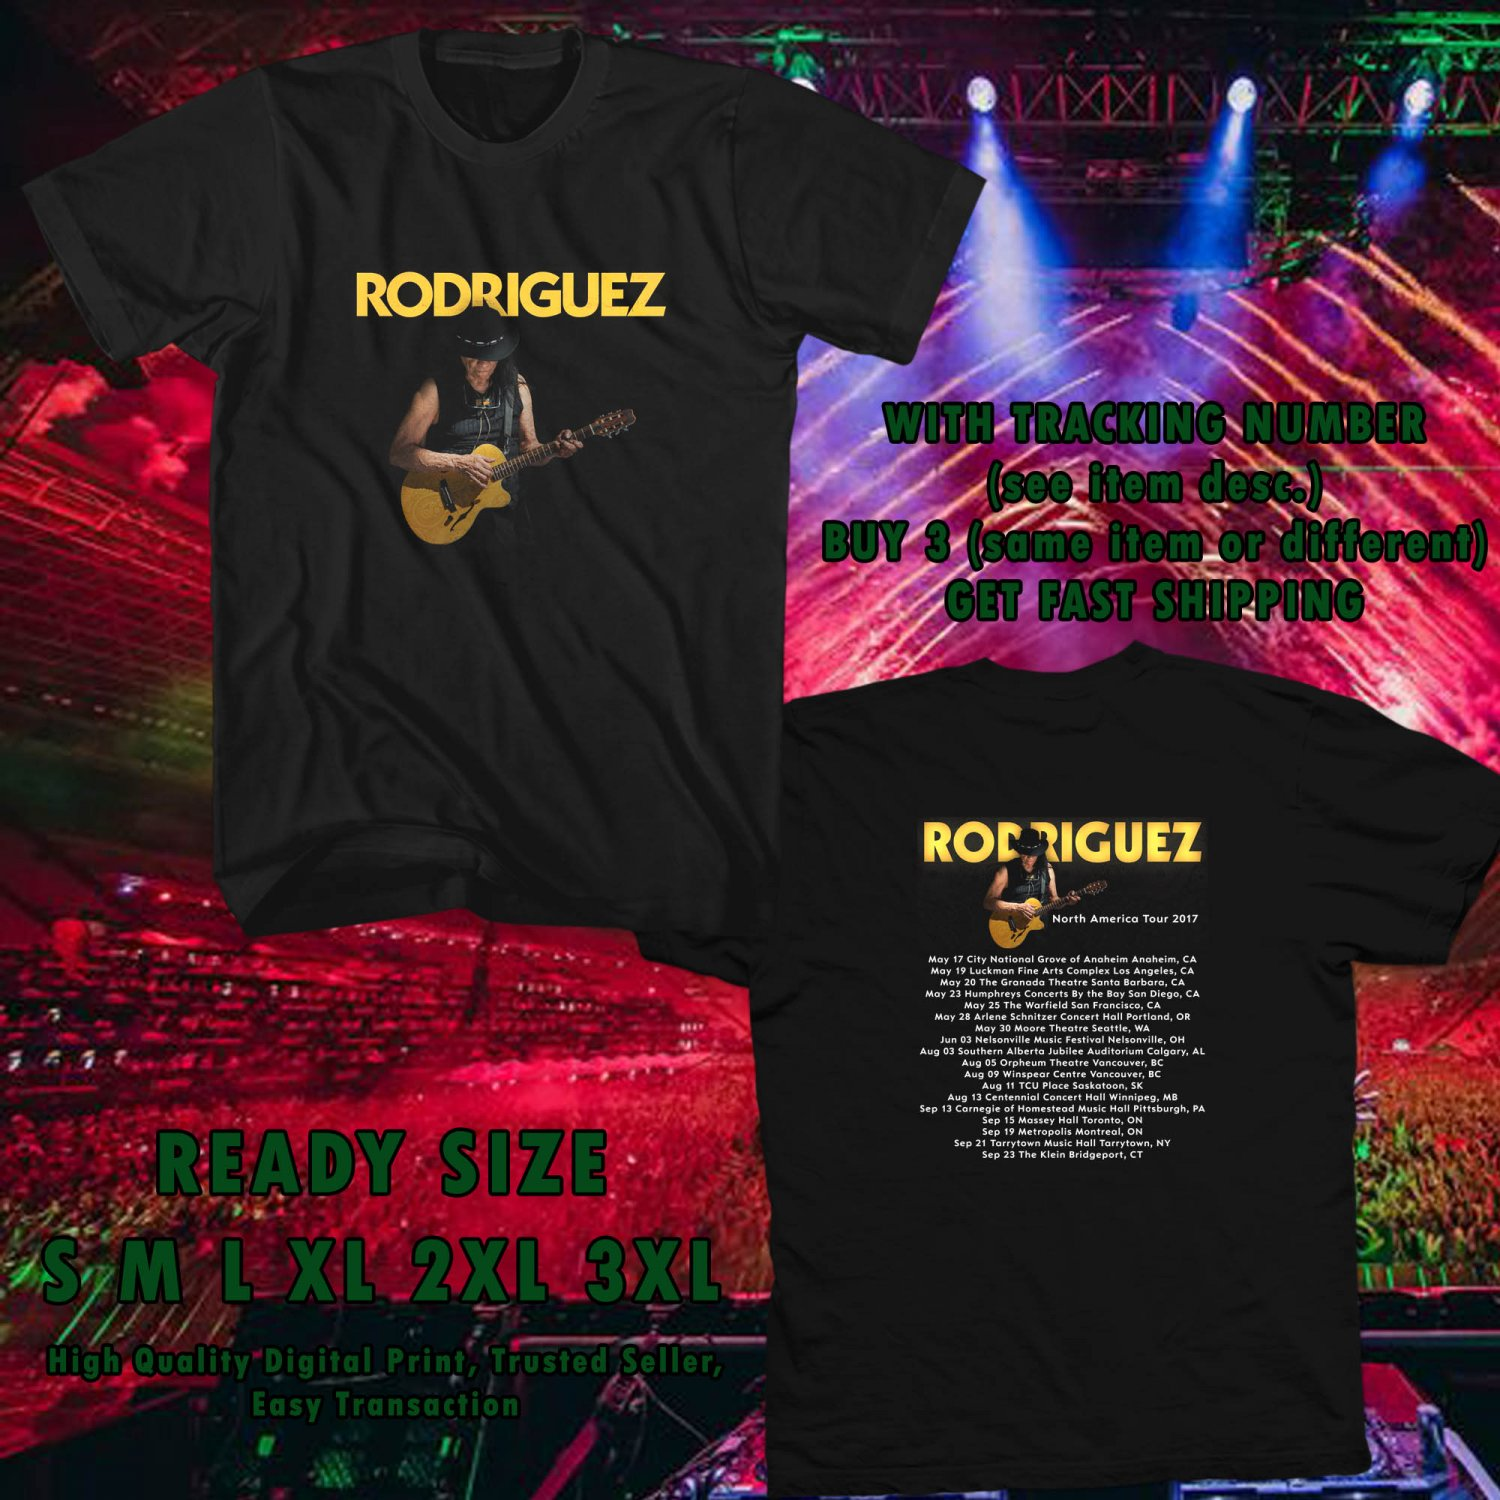 NEW SIXTO RODRIGUEZ N.AMERICA TOUR 2017 black TEE W DATES DMTR 223